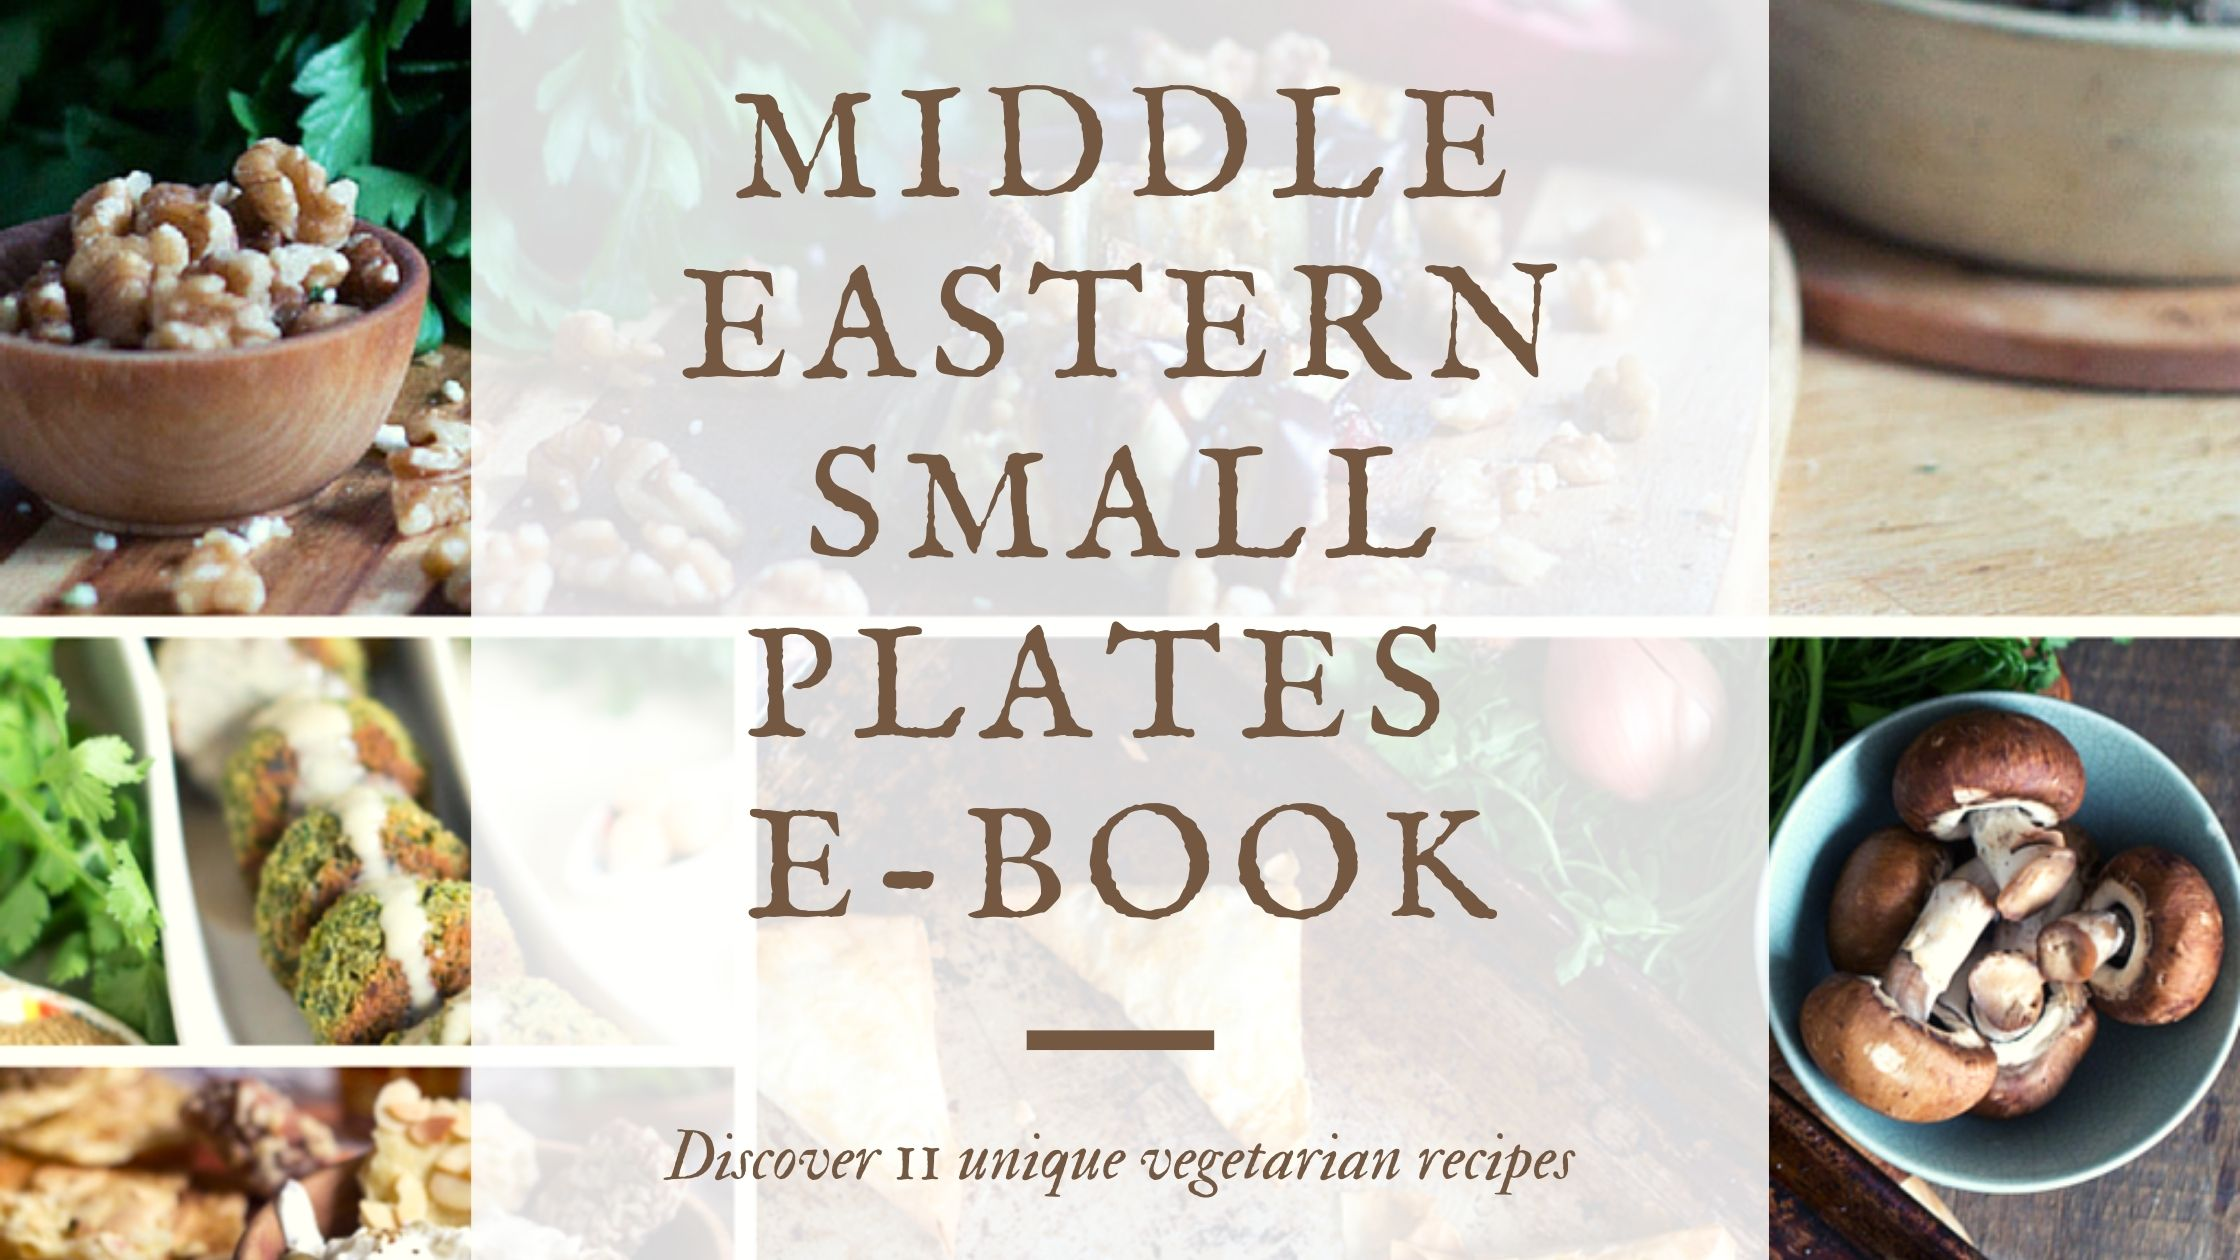 Middle Eastern Small Plates ebook banner